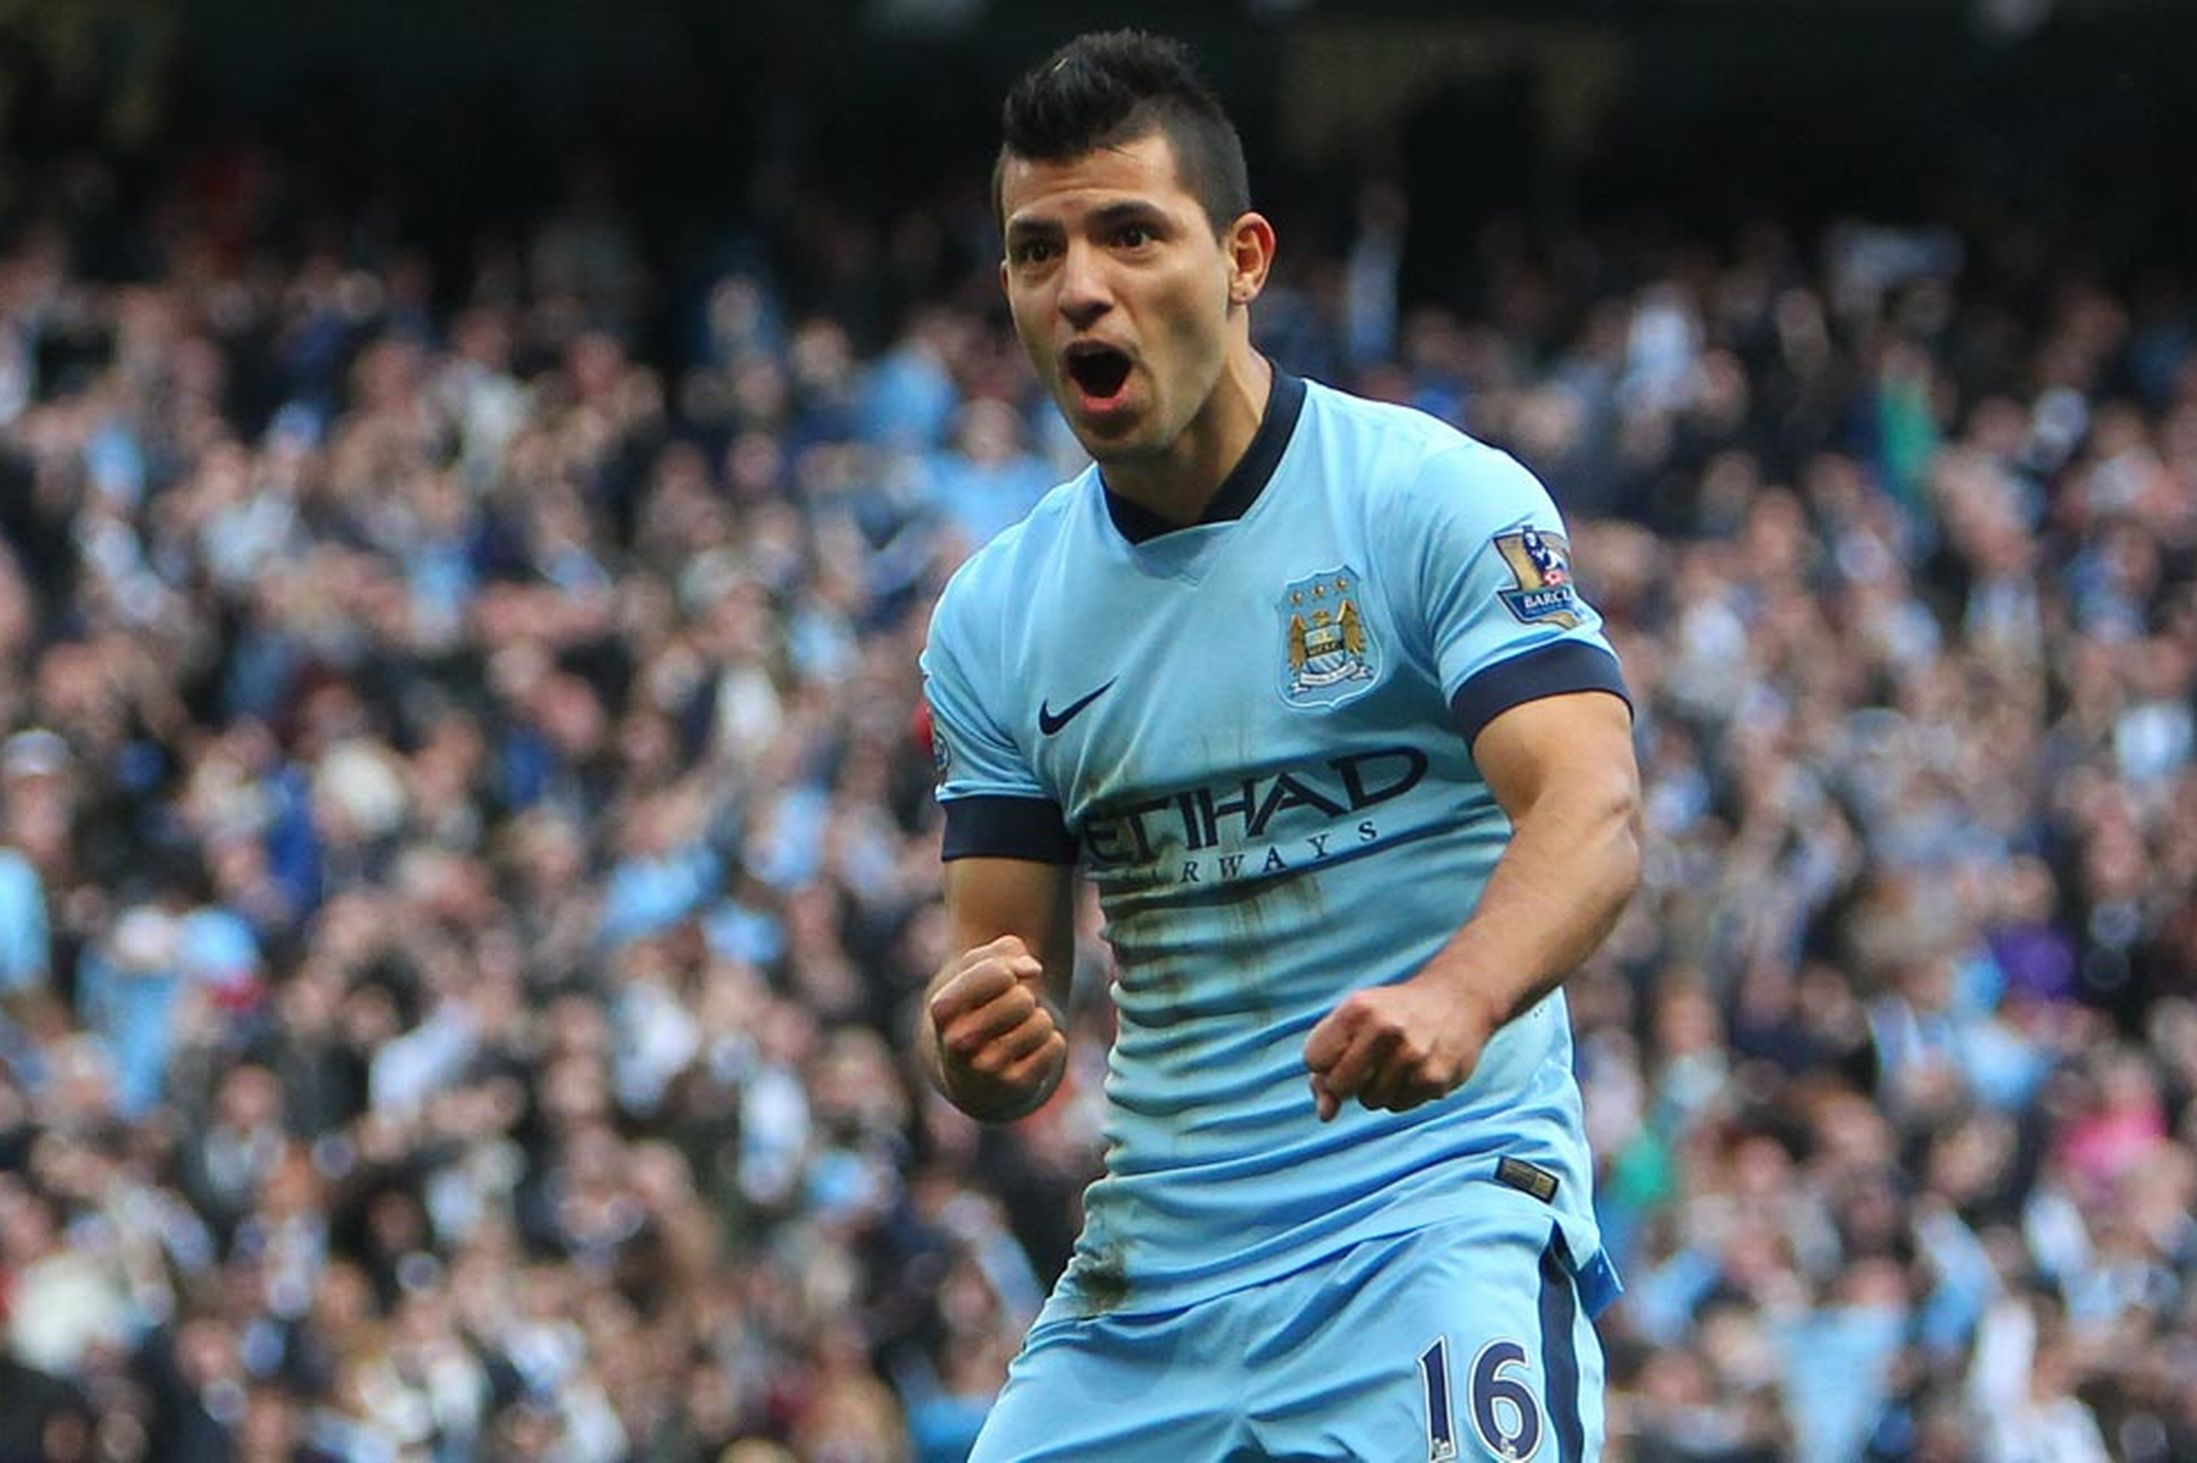 The top scorer for the championship is Argentine Sergio Aguero with 14 goals, 39% of the team's total goals